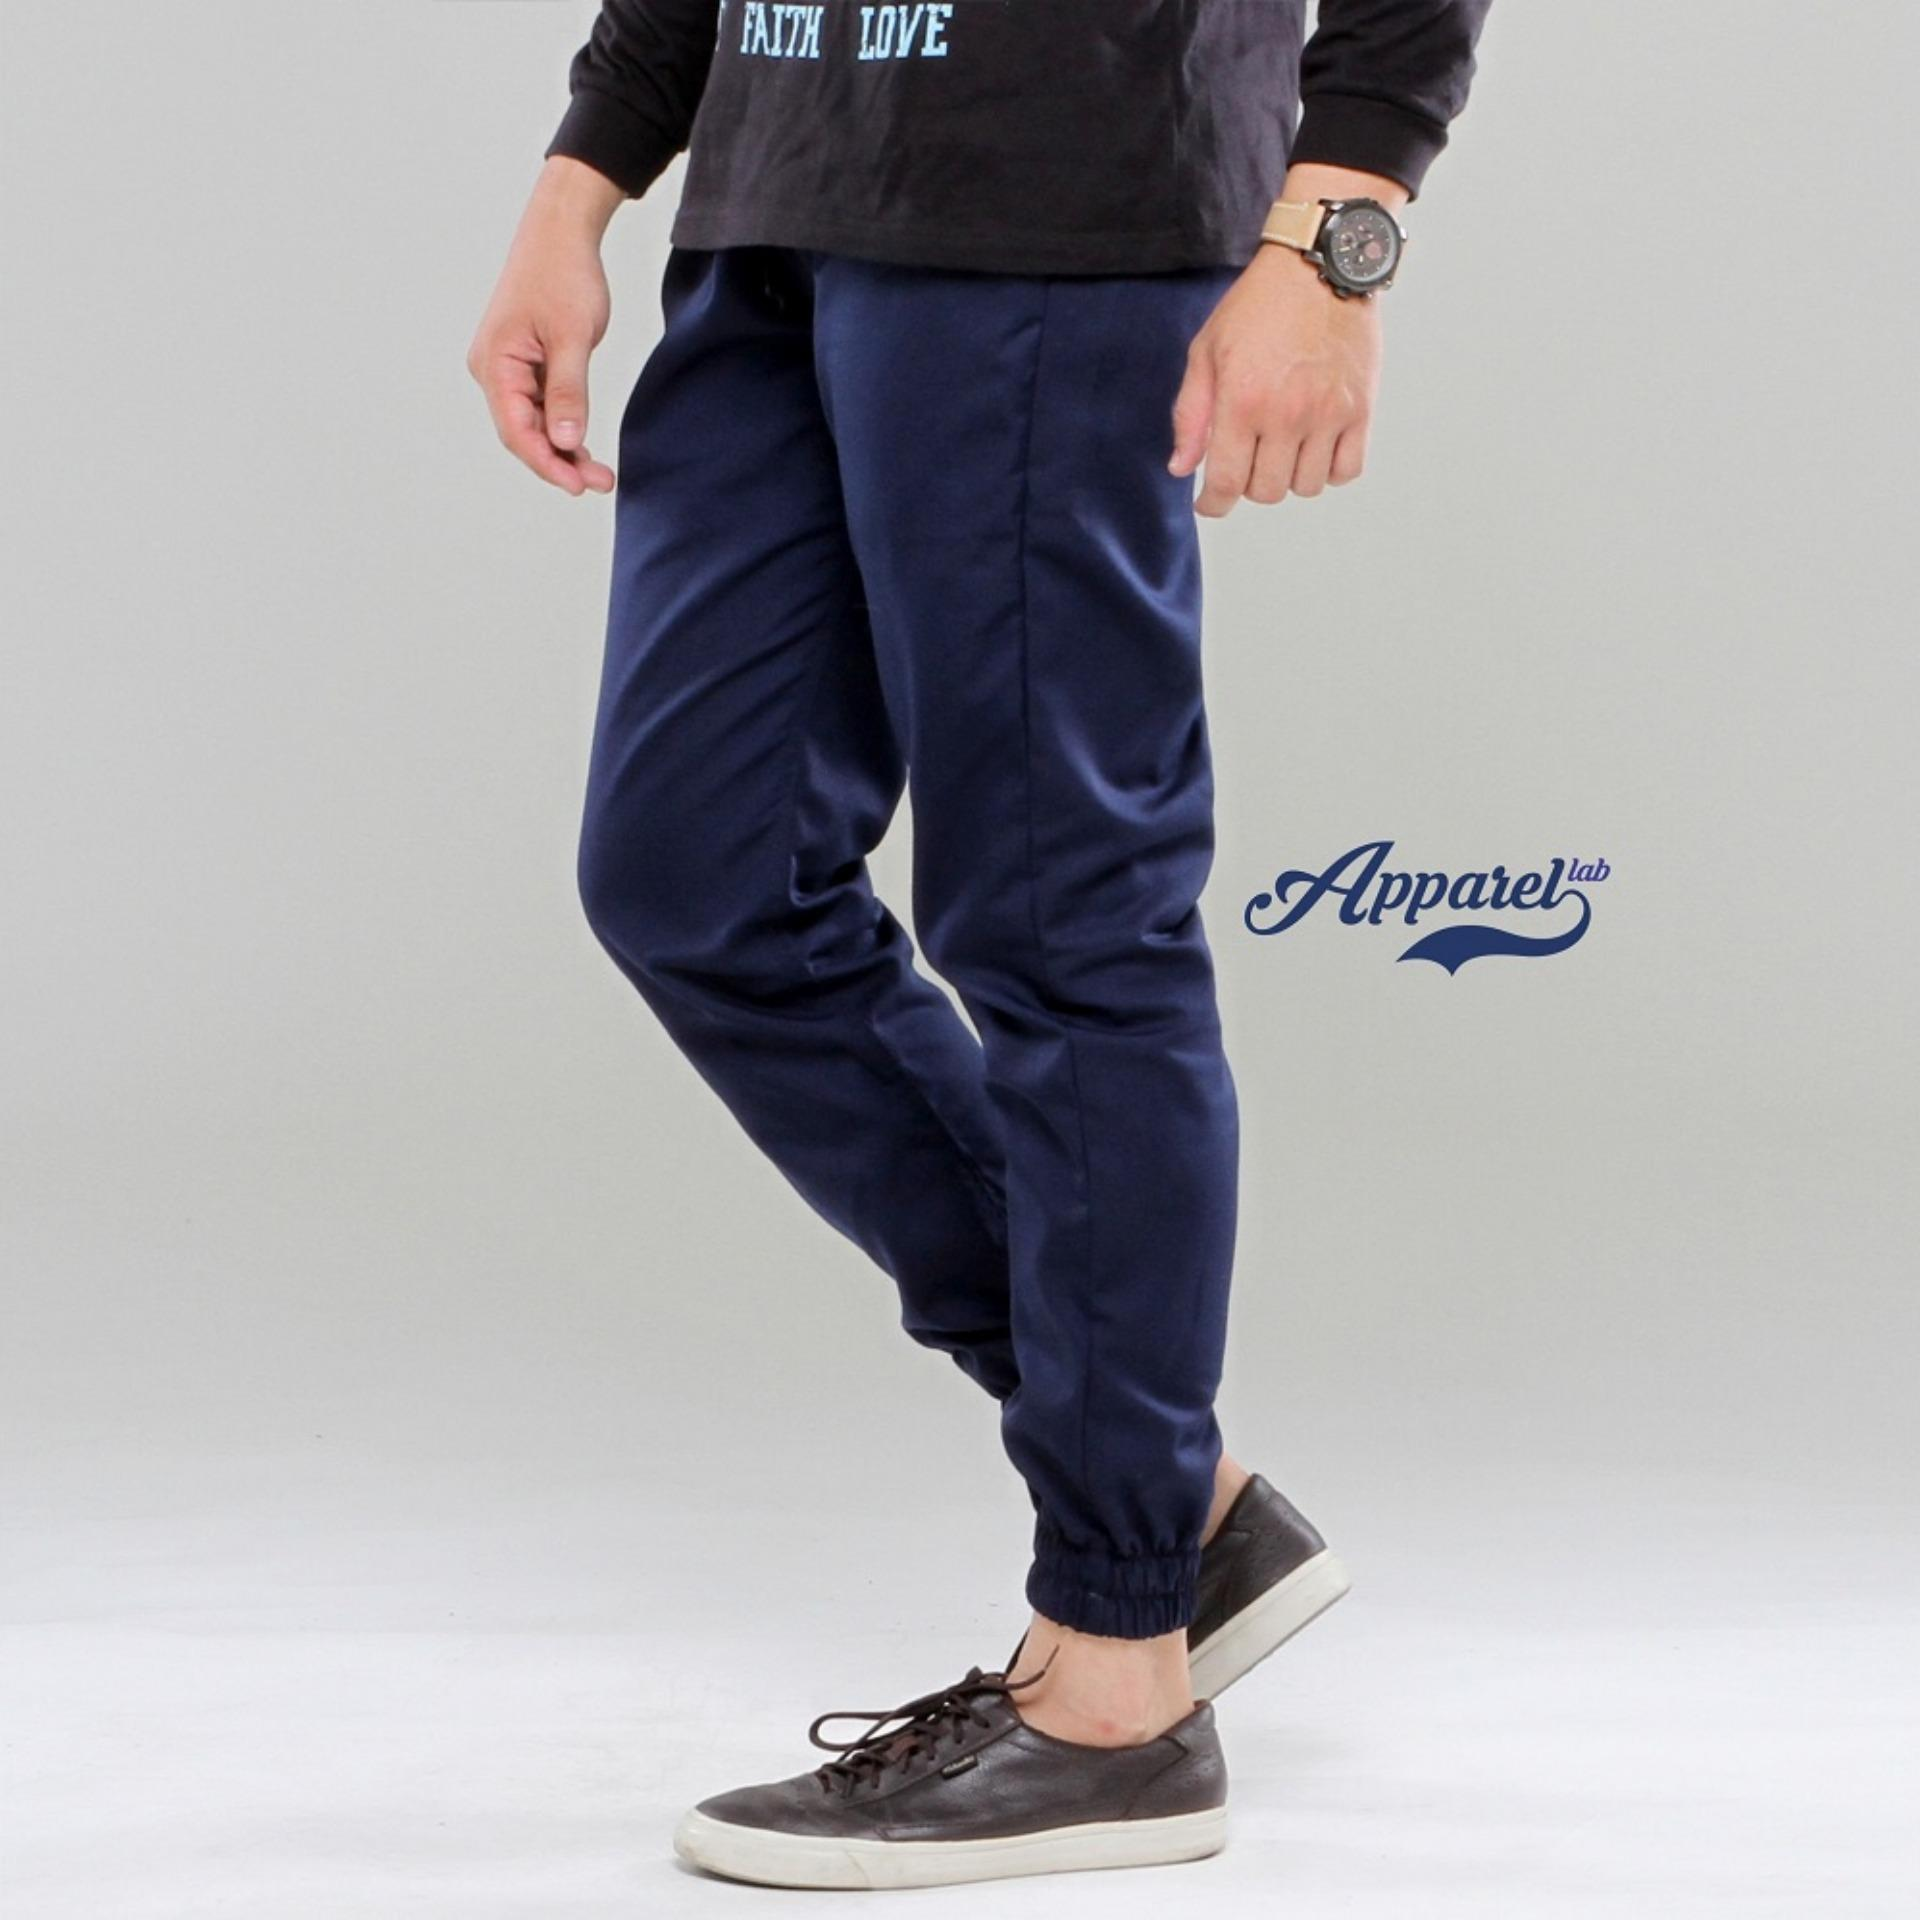 Review Apparel Lab Jogger Basic Navy Blue Di Jawa Barat